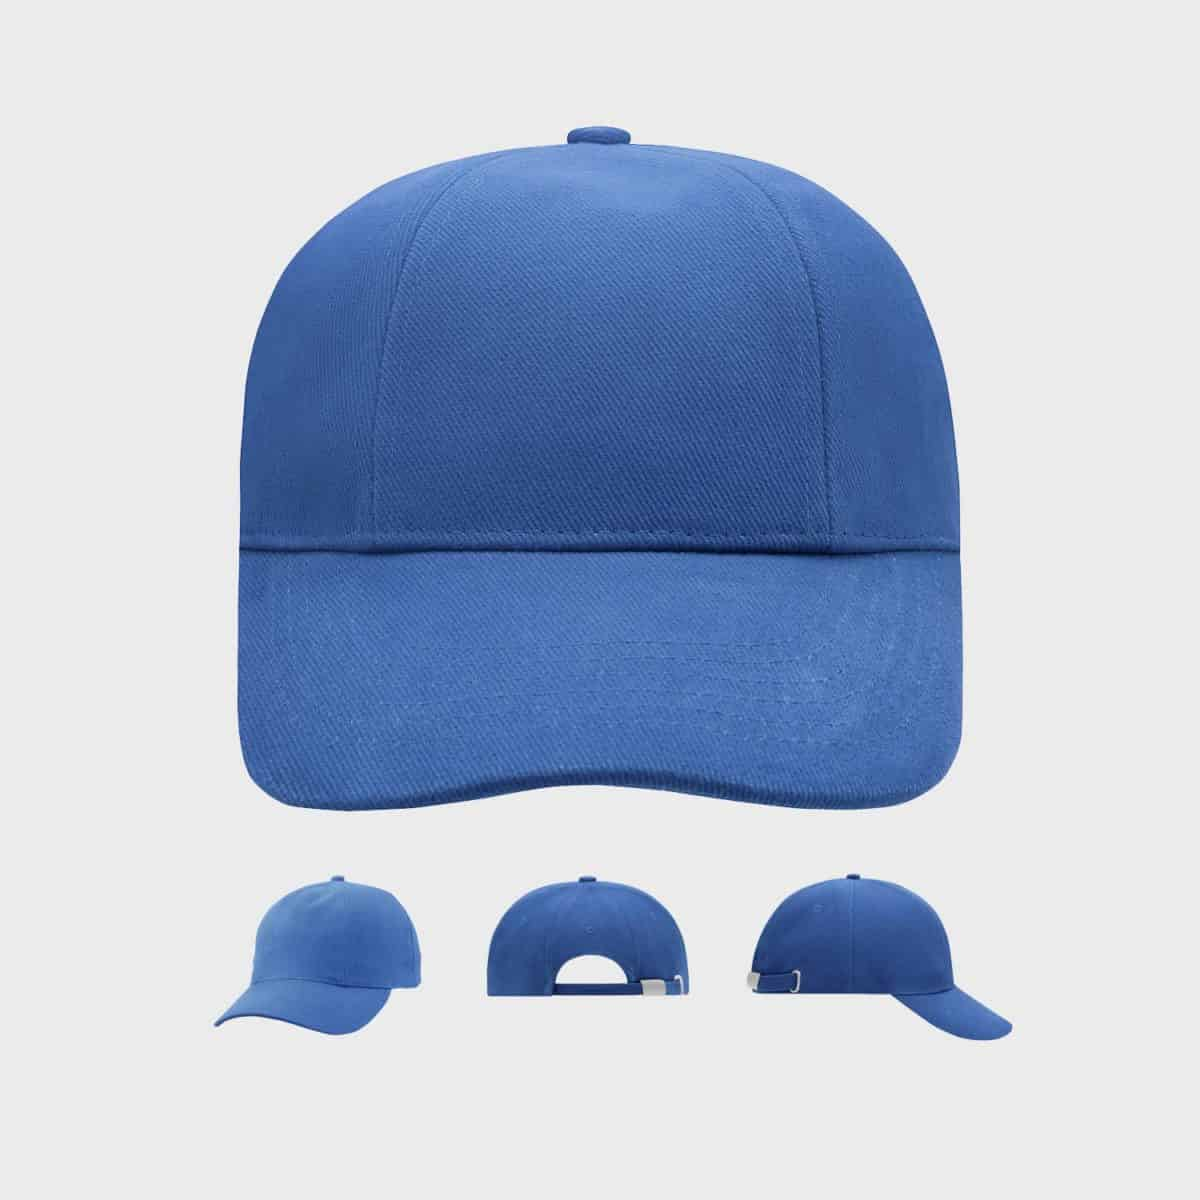 laminated-6-panel-cap-unisex-royal-kaufen-besticken_stickmanufaktur